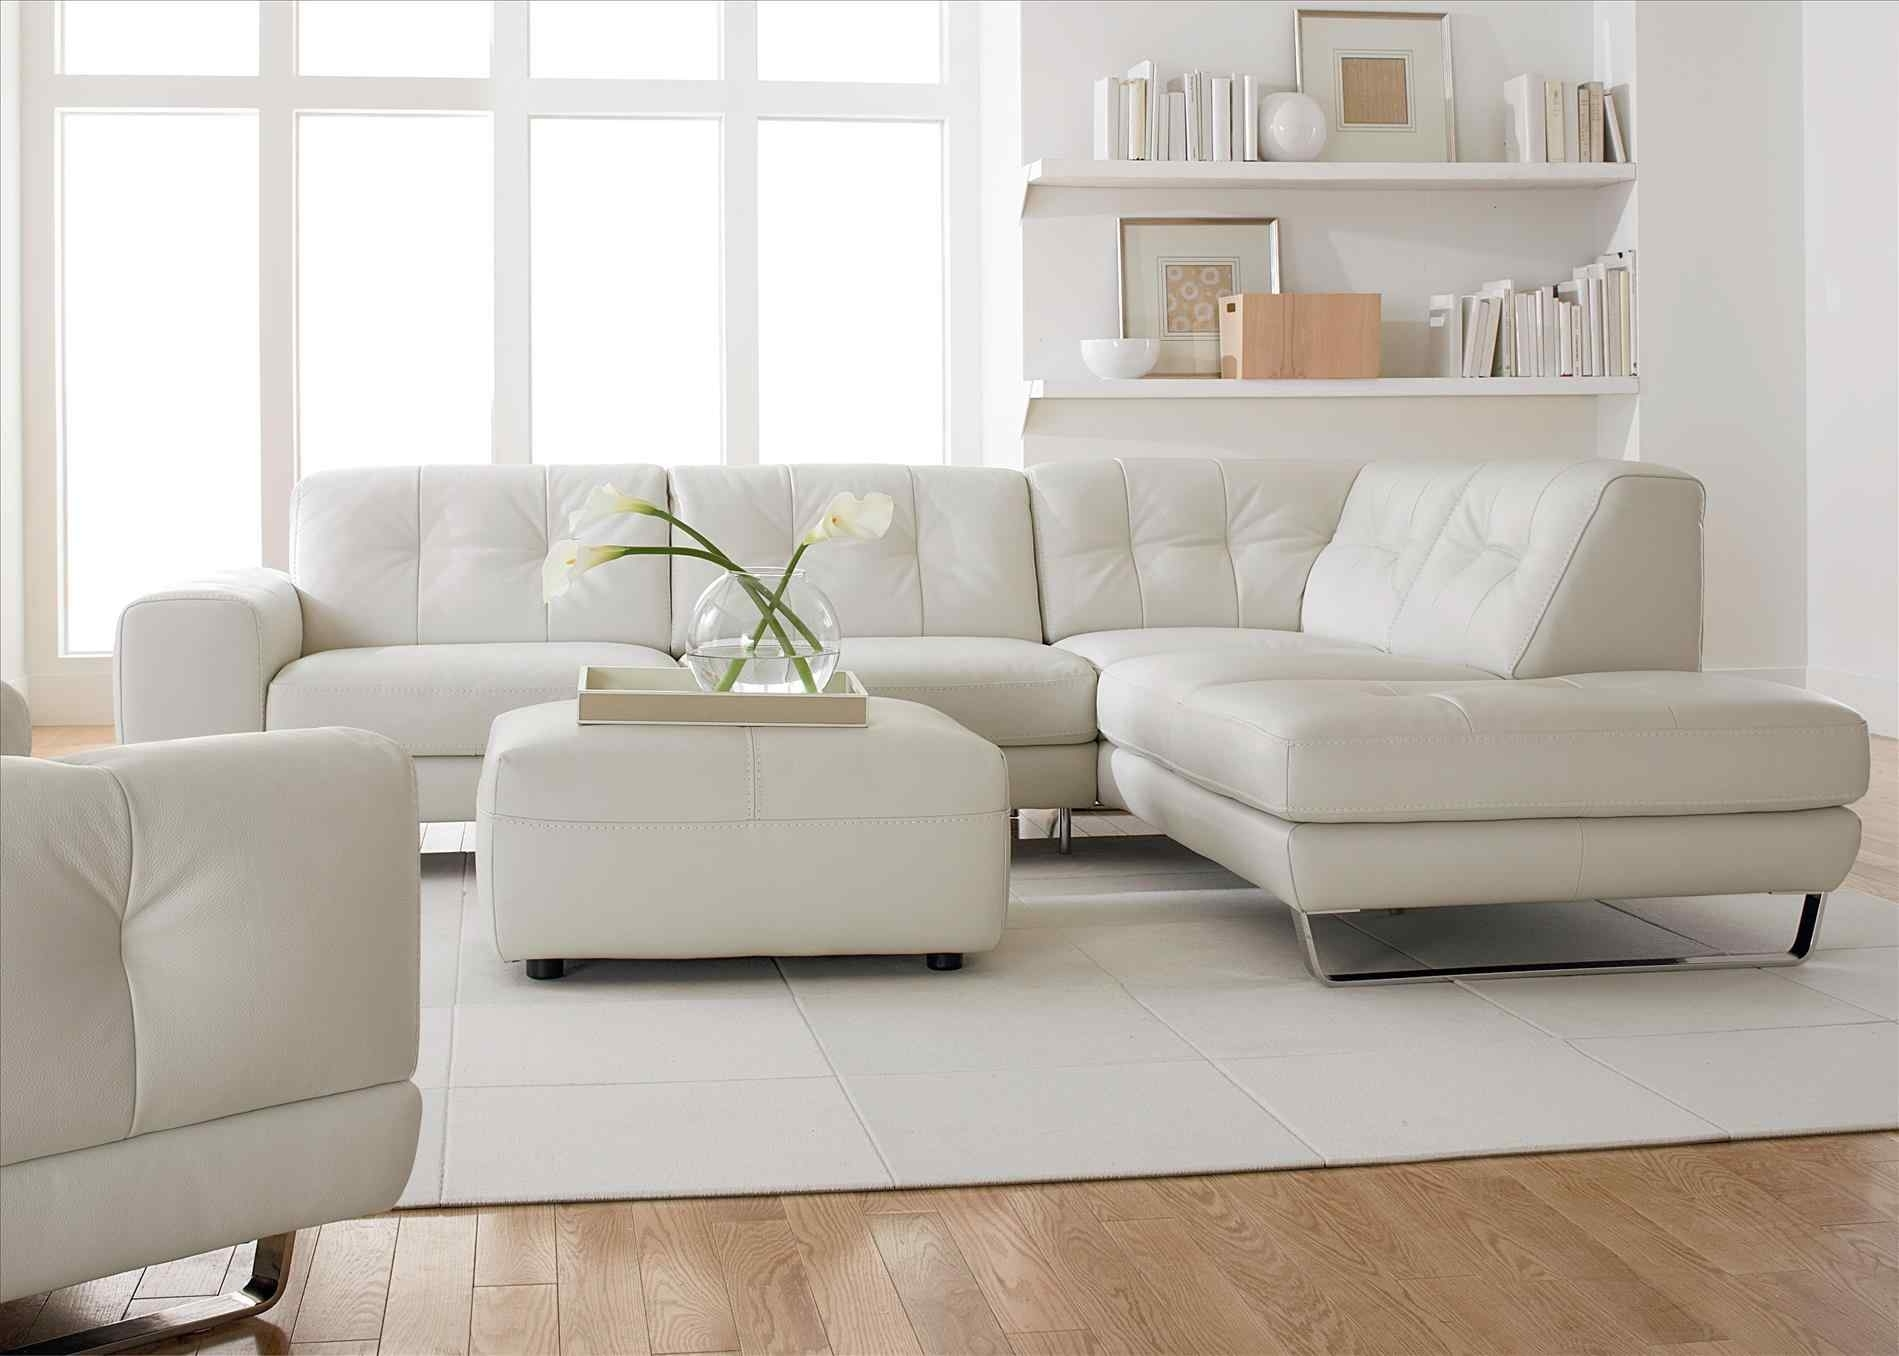 10 best collection of off white leather sofas sofa ideas. Black Bedroom Furniture Sets. Home Design Ideas